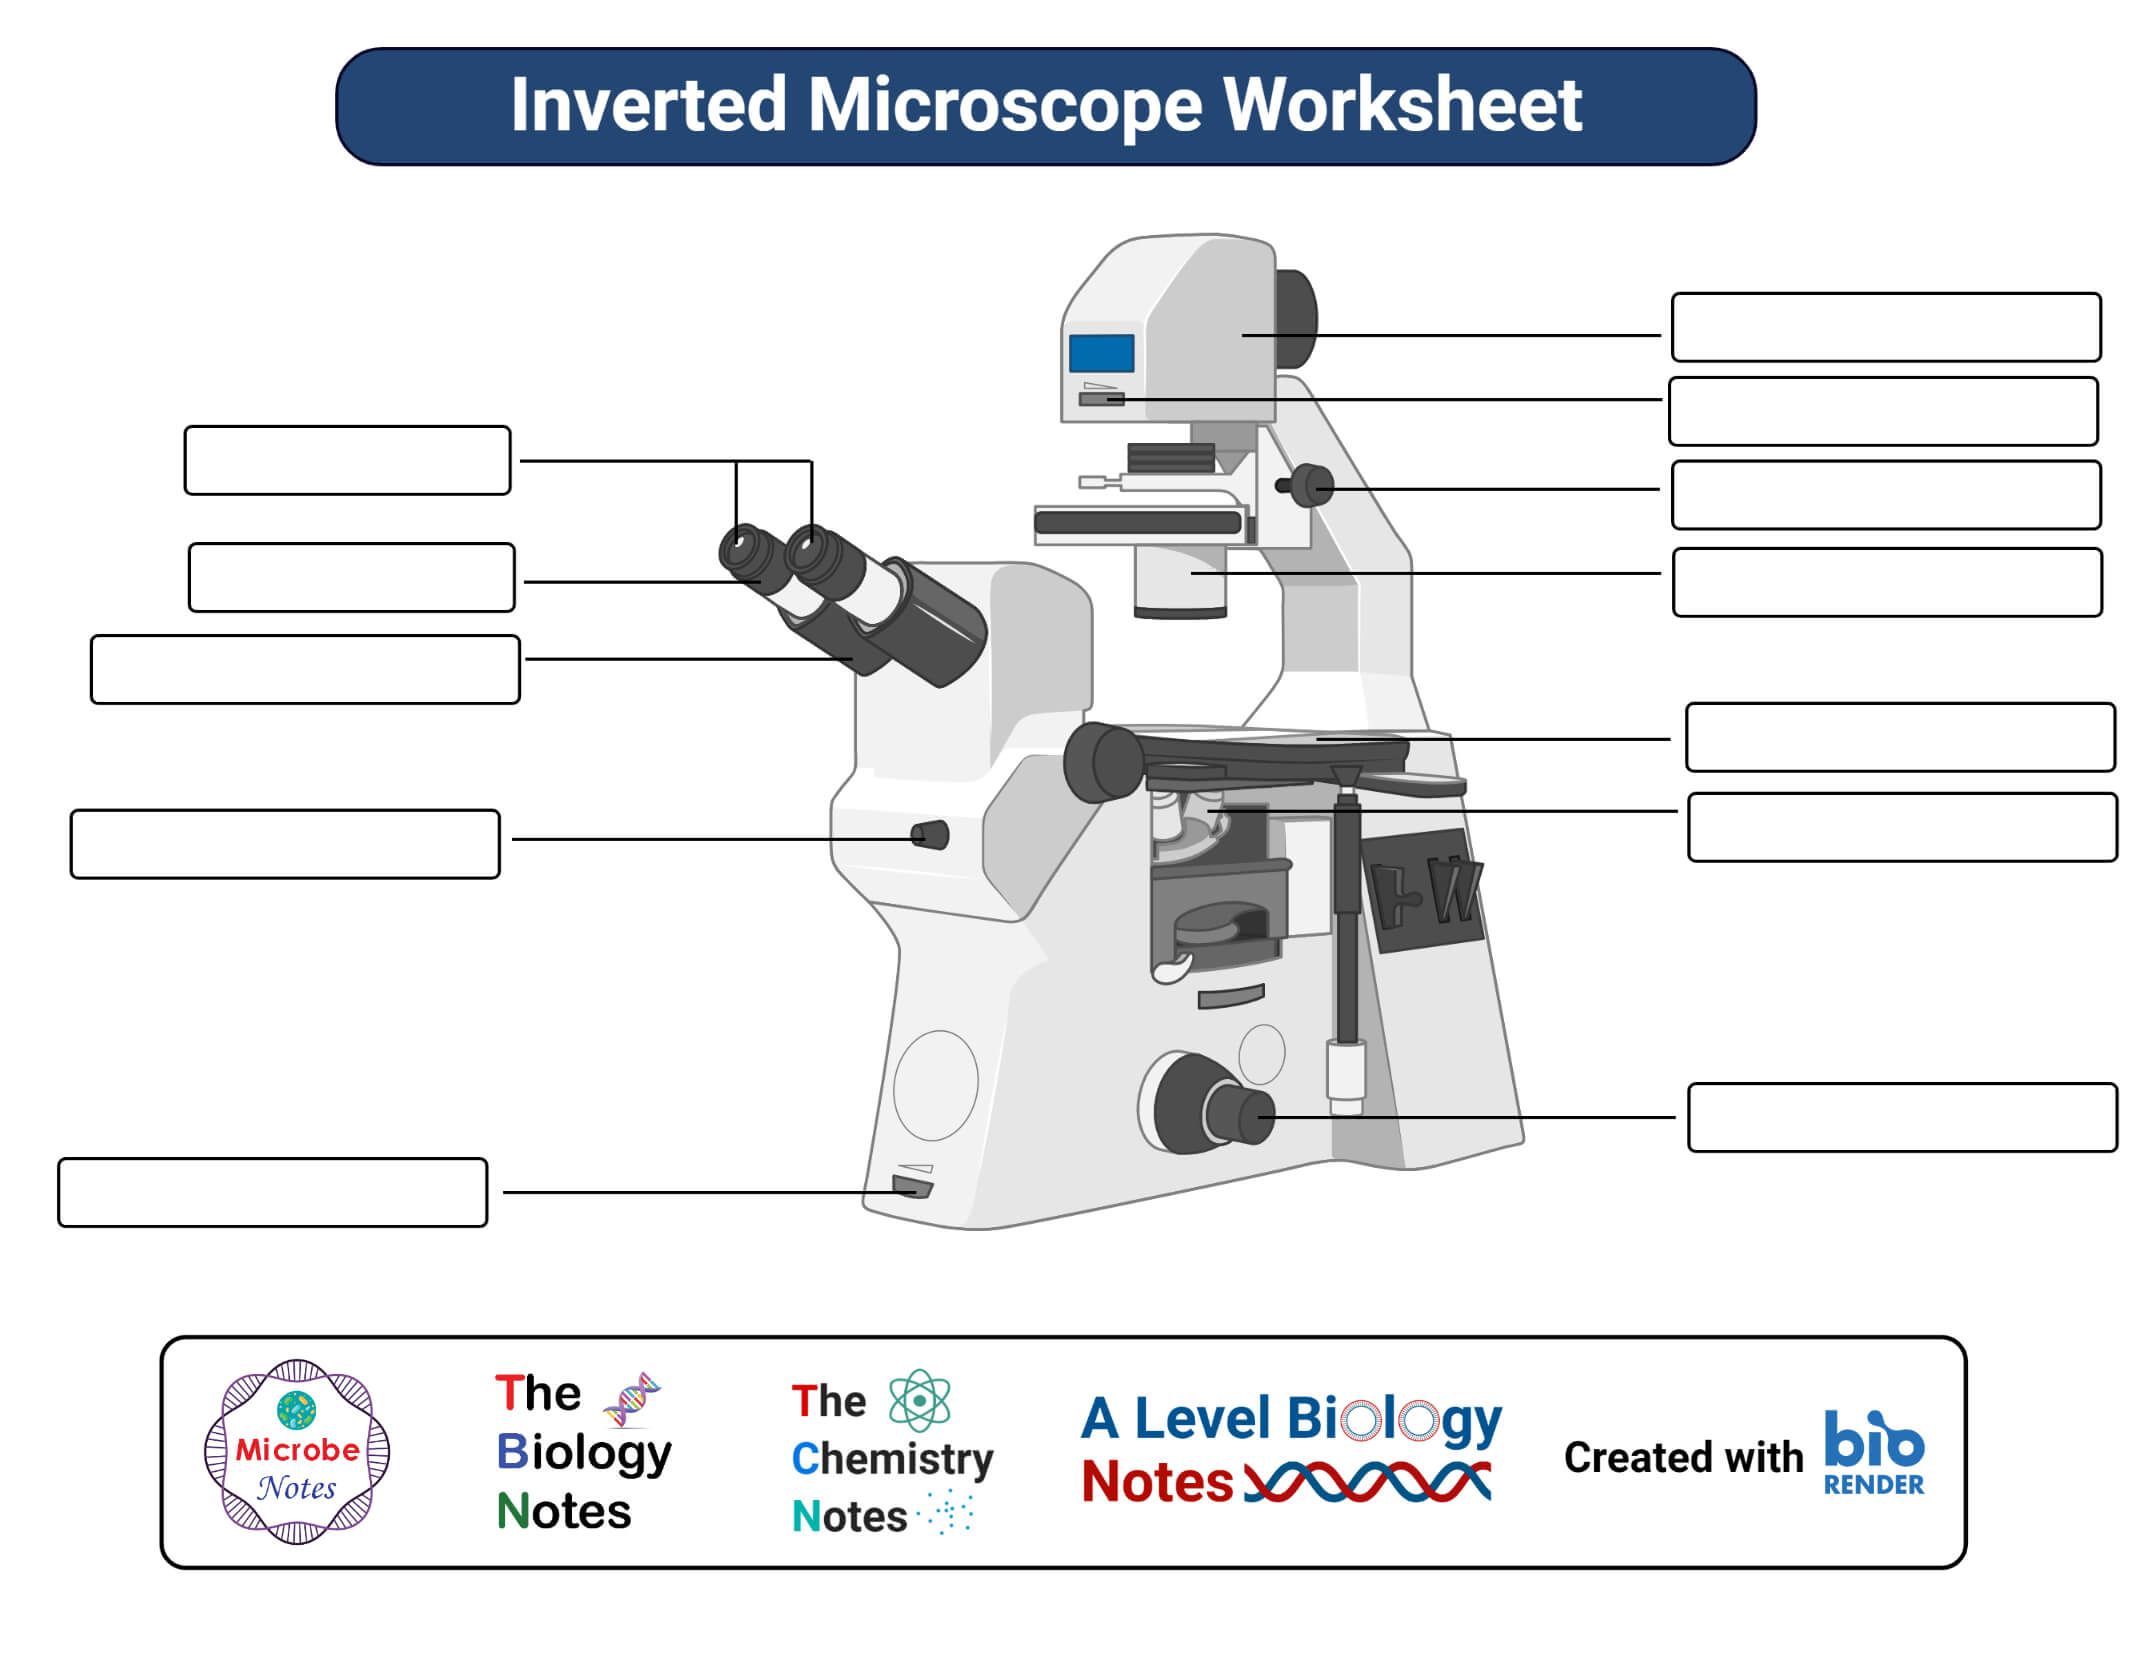 Inverted Microscope Worksheet